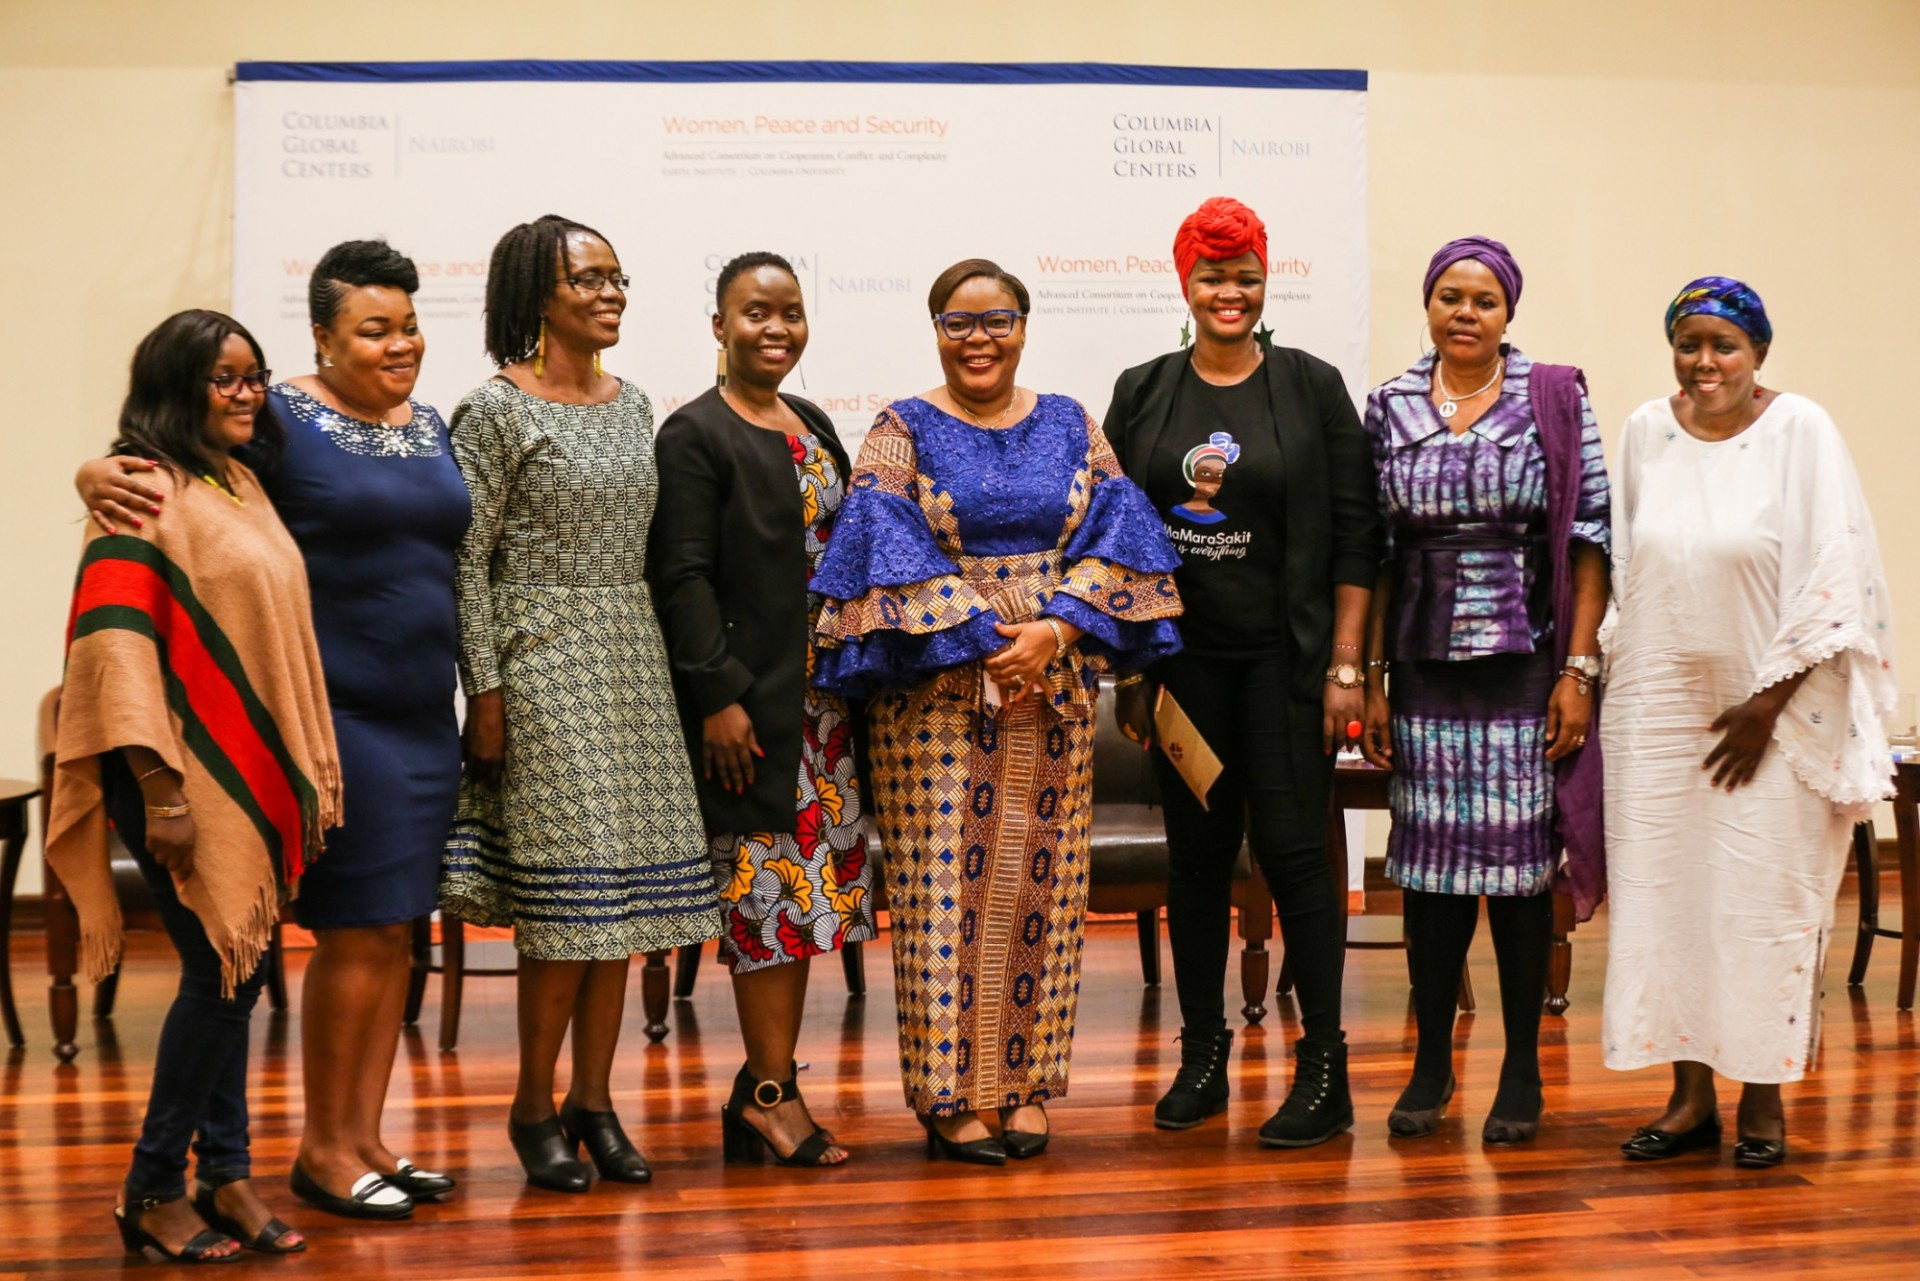 Leymah Gbowee, ED of the WPS Program, with Fellowship participants at the Columbia Global Center in Nairobi.